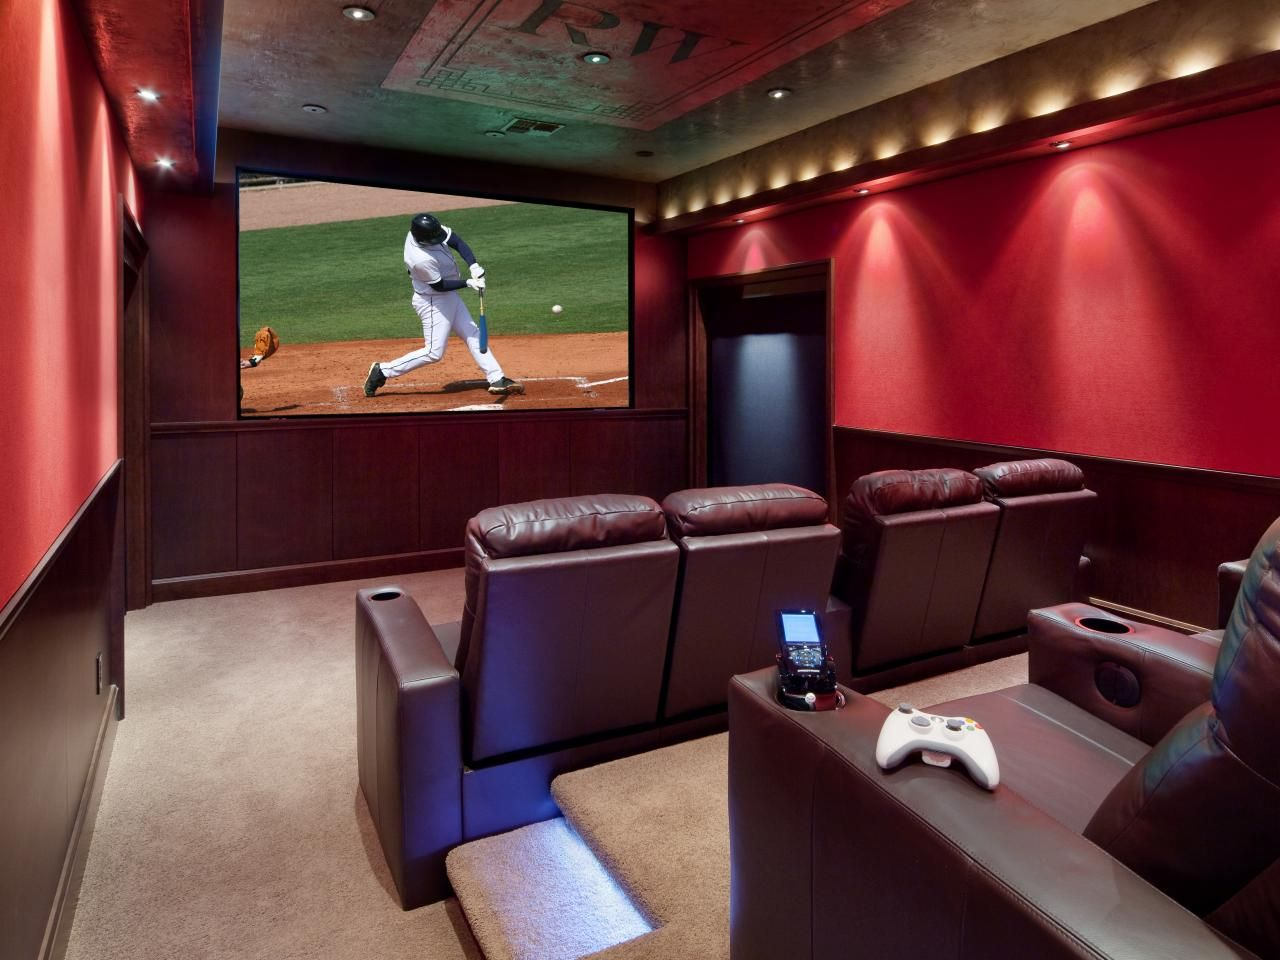 Designer Home Theaters U0026 Media Rooms: Inspirational Pictures | Home  Remodeling   Ideas For Basements